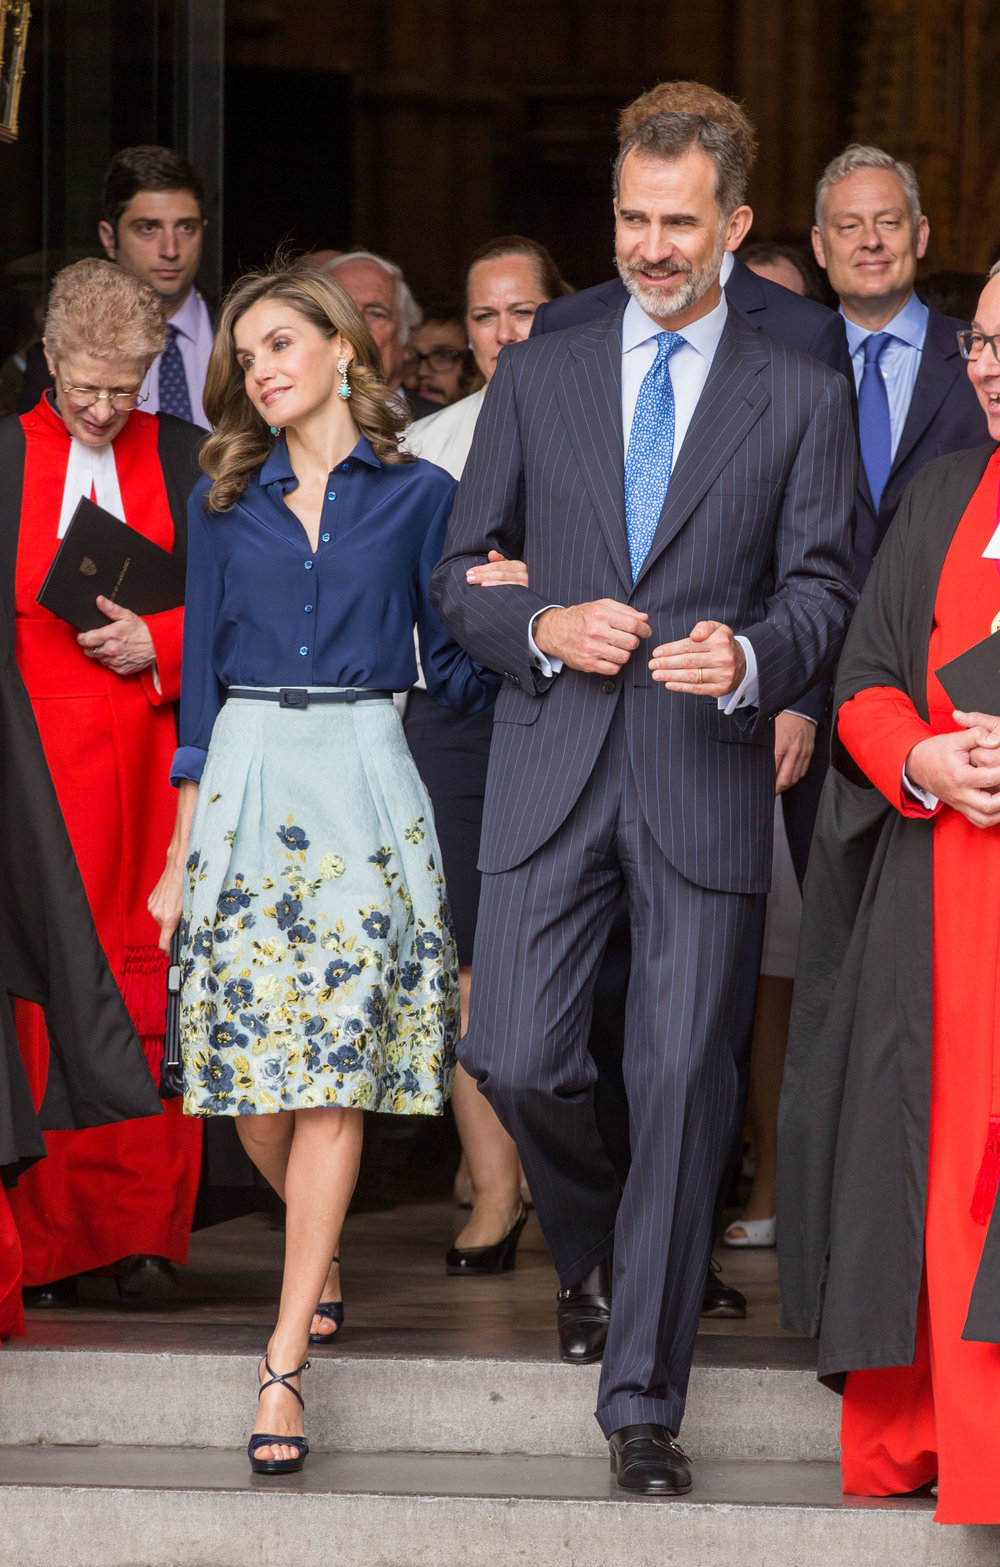 King Felipe VI, Queen Letizia